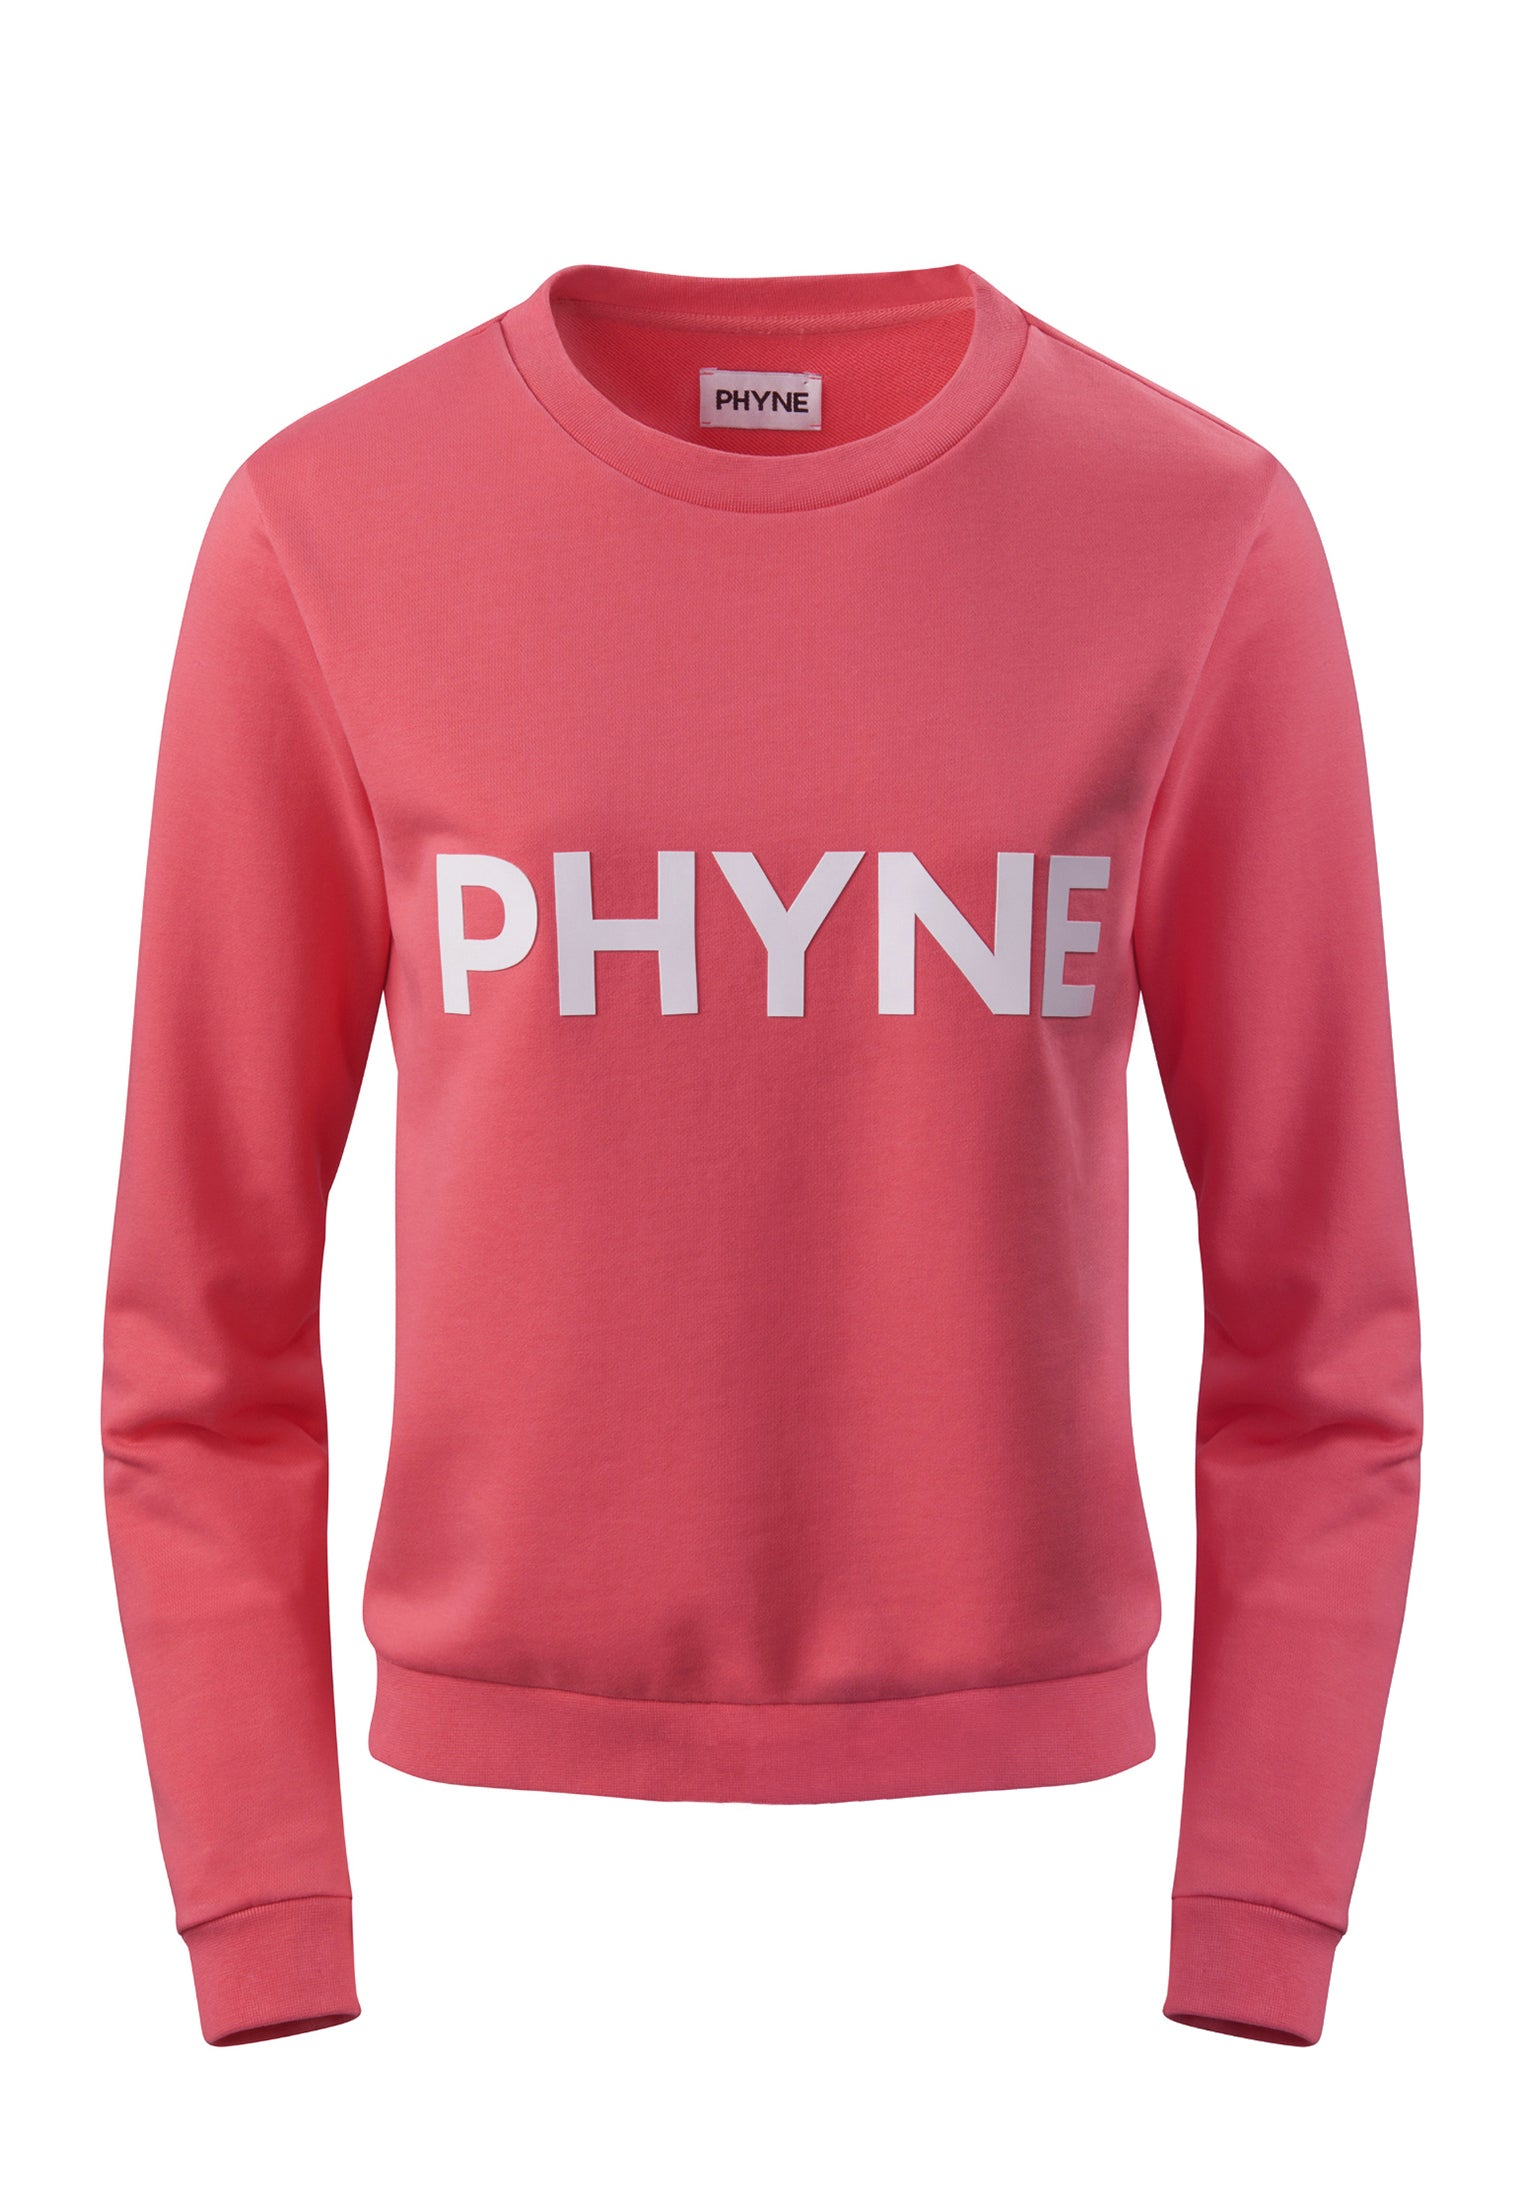 The Phyne Sweatshirt Coral